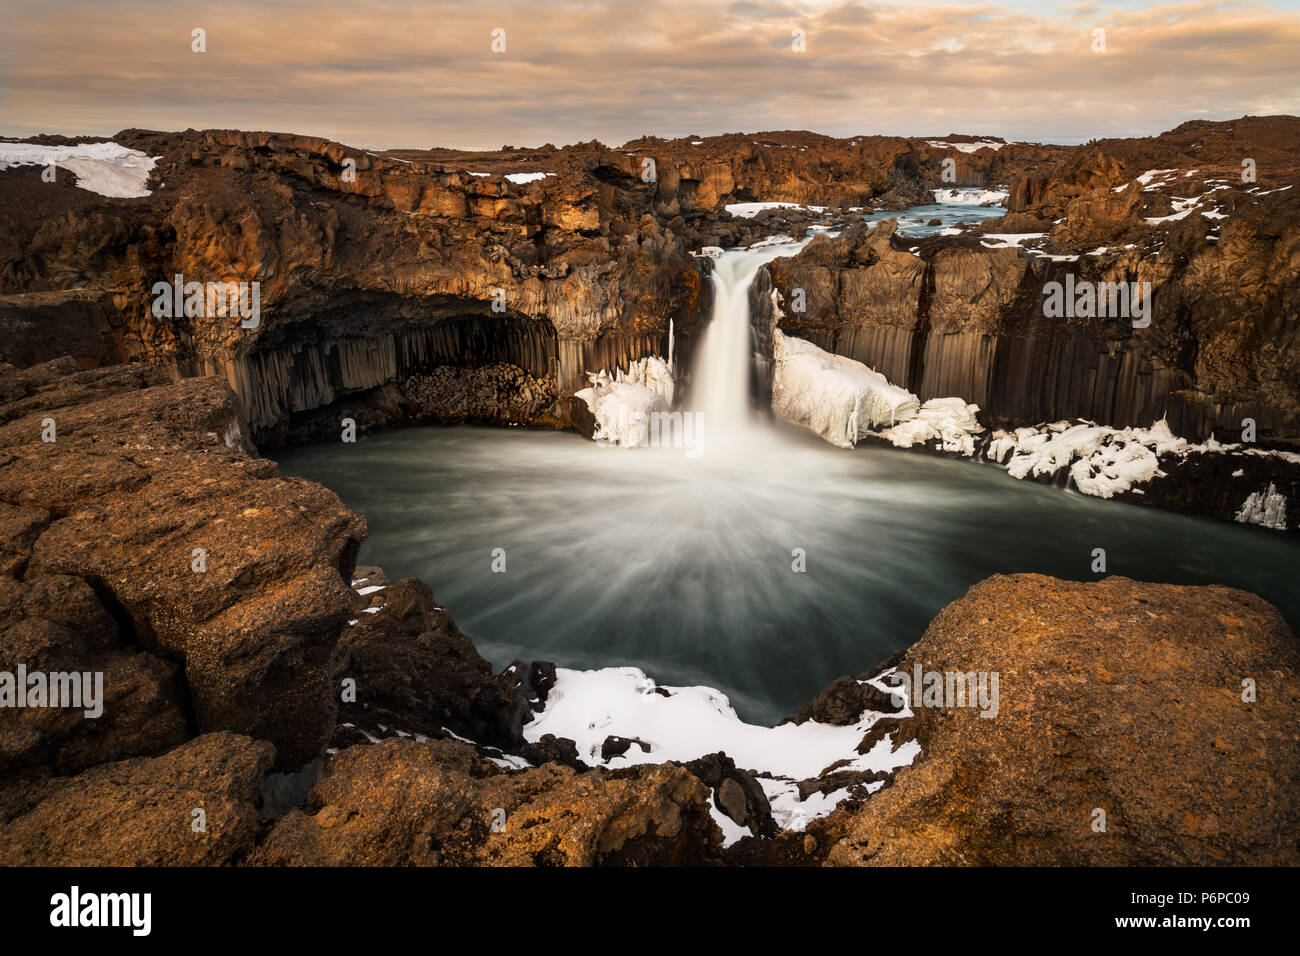 Magical Aldeyjarfoss in the highlands of Iceland. - Stock Image